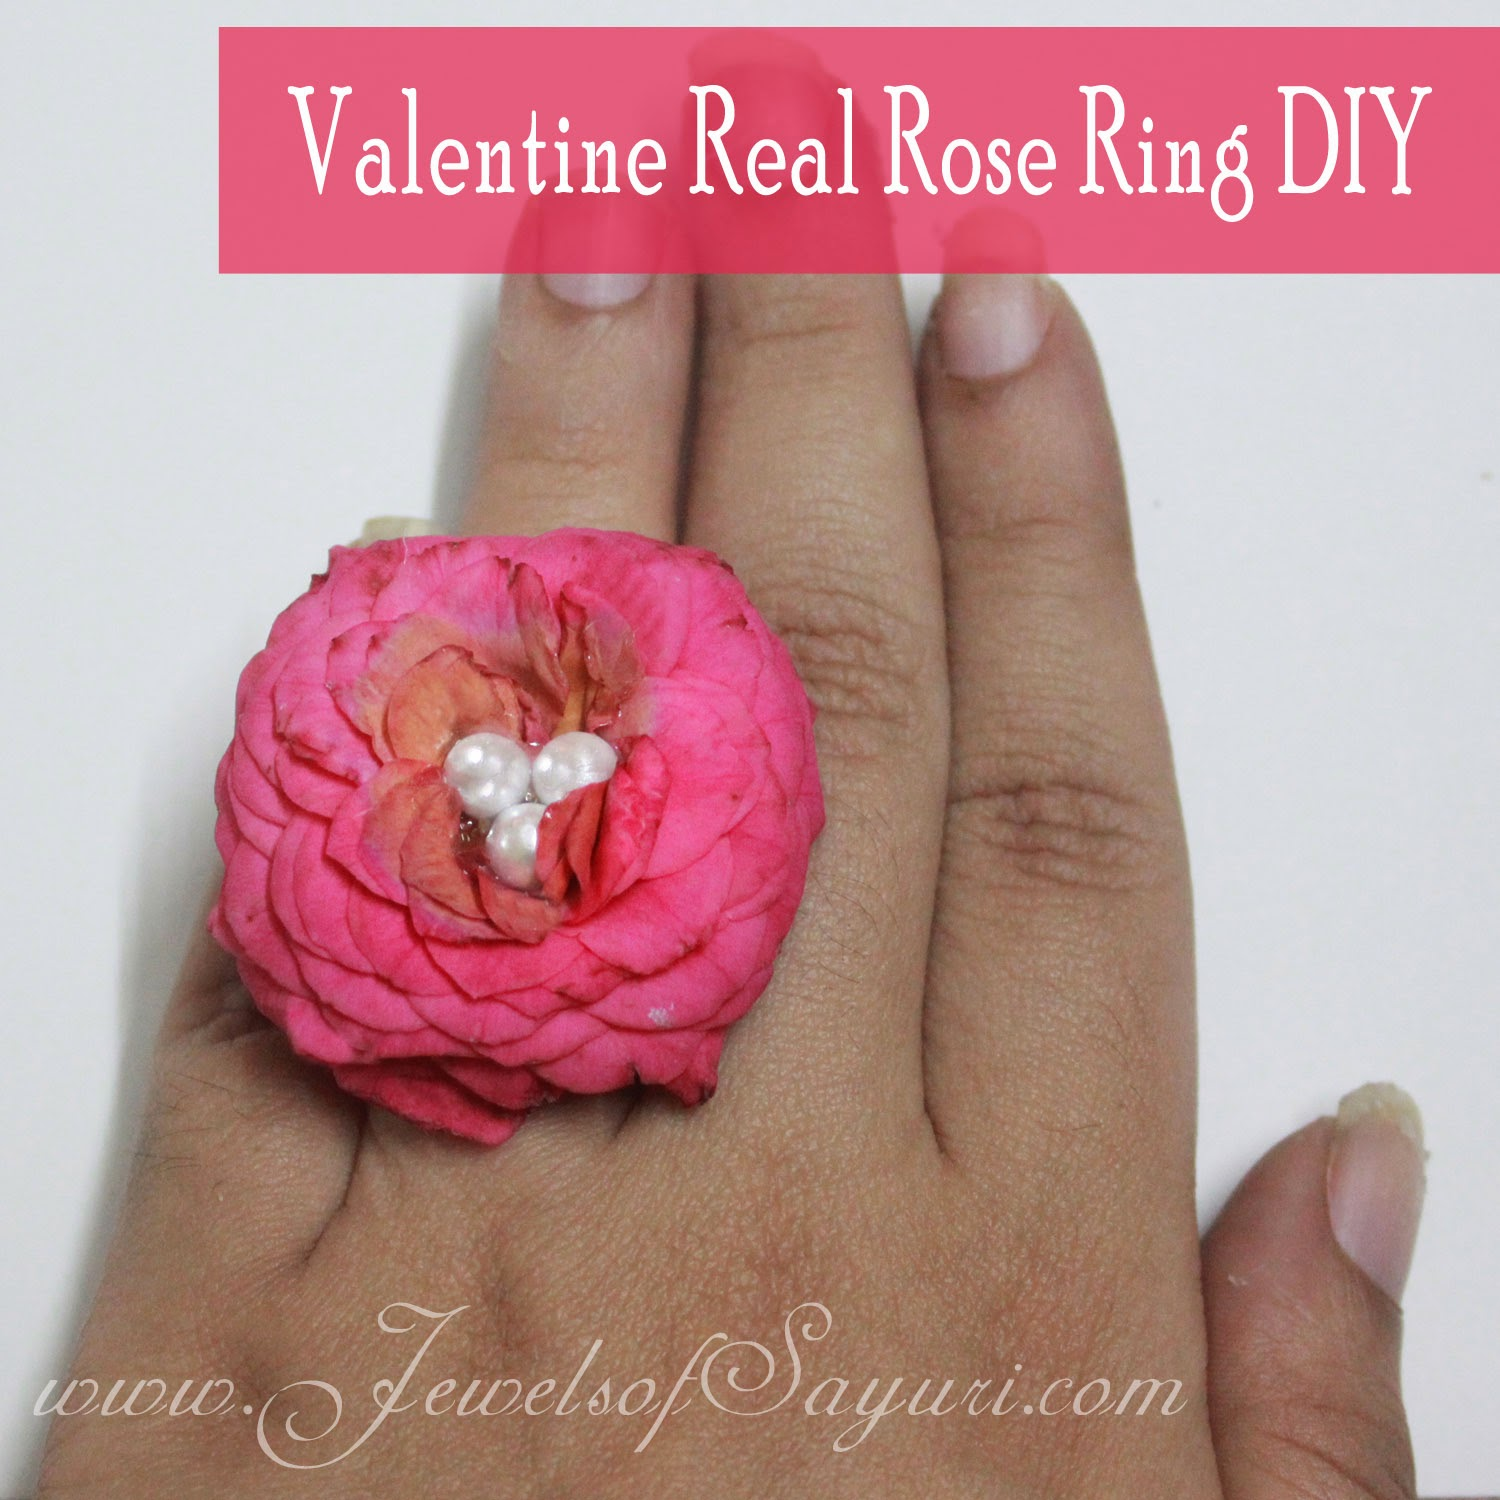 Valentine real rose jewlery DIY